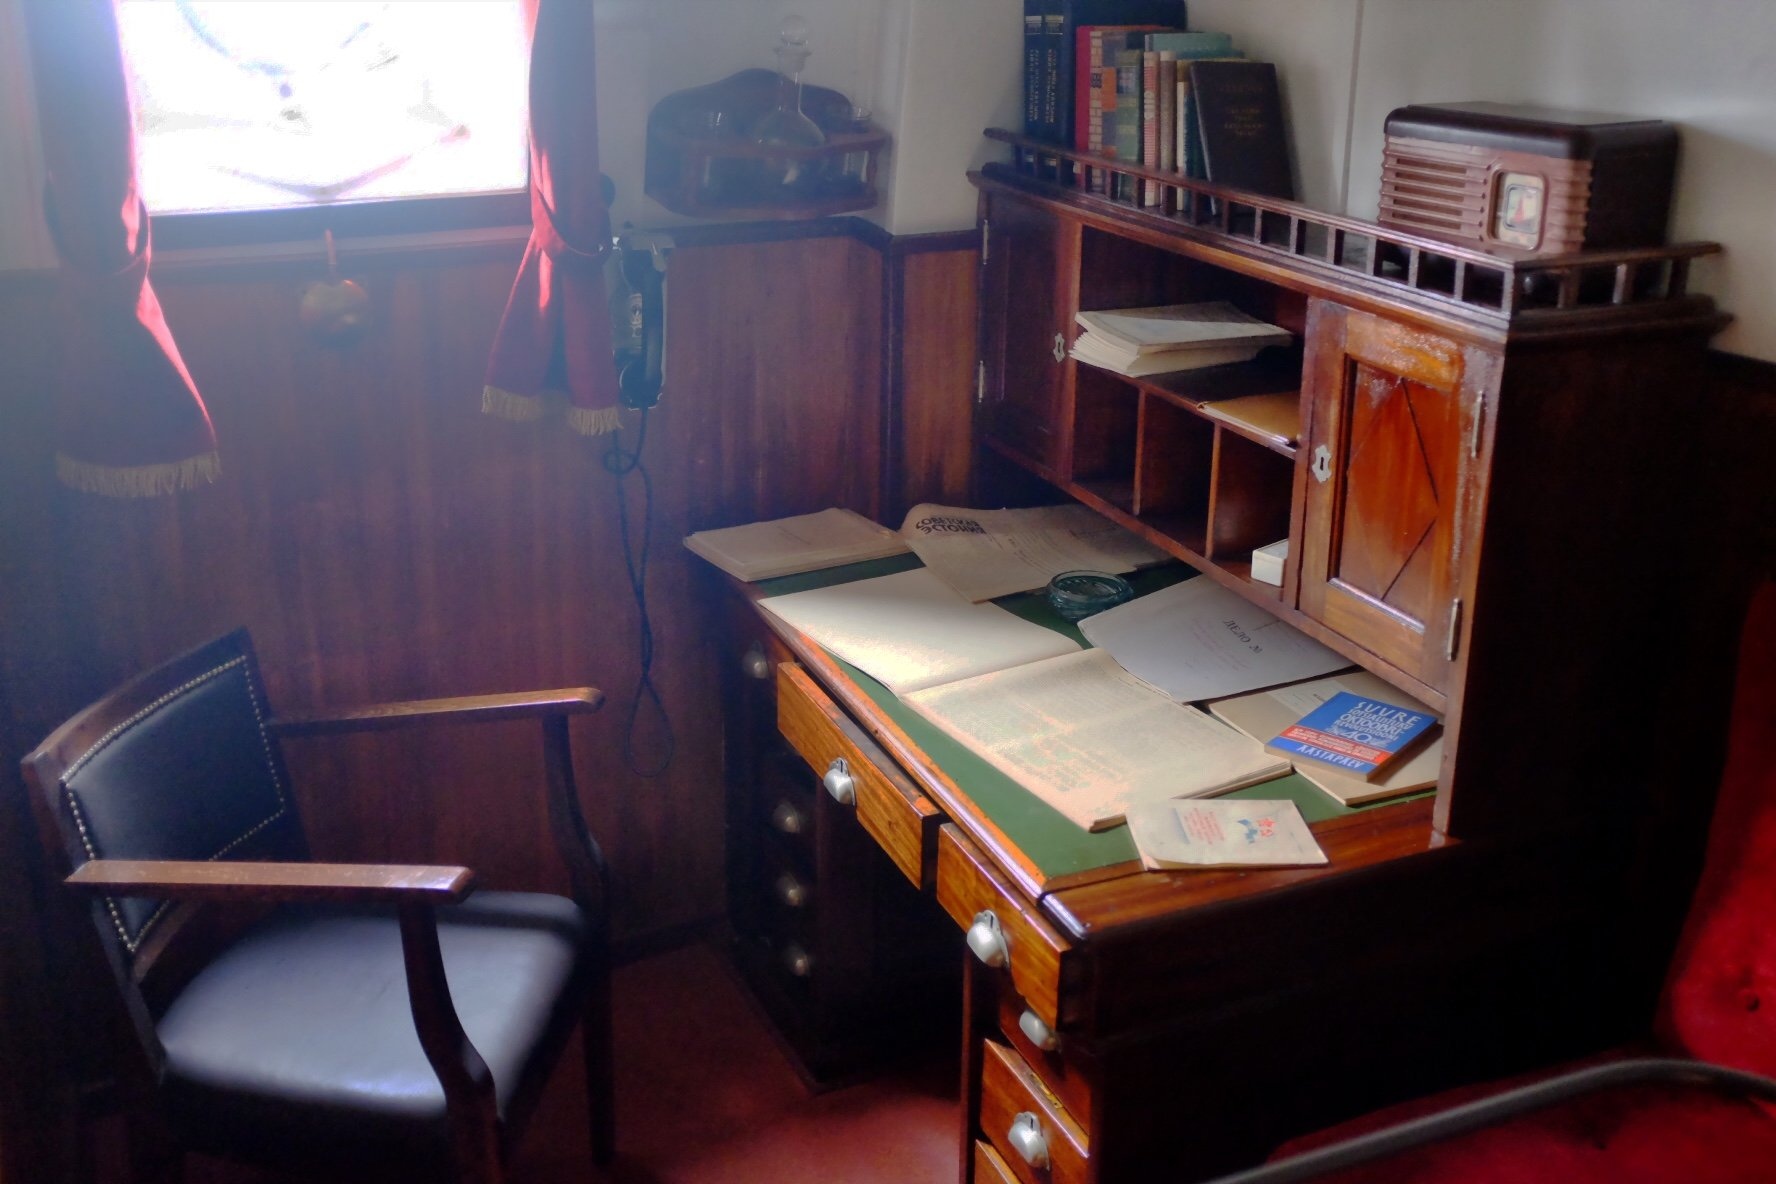 Captains Chamber at the Seaplane Museum in Tallinn